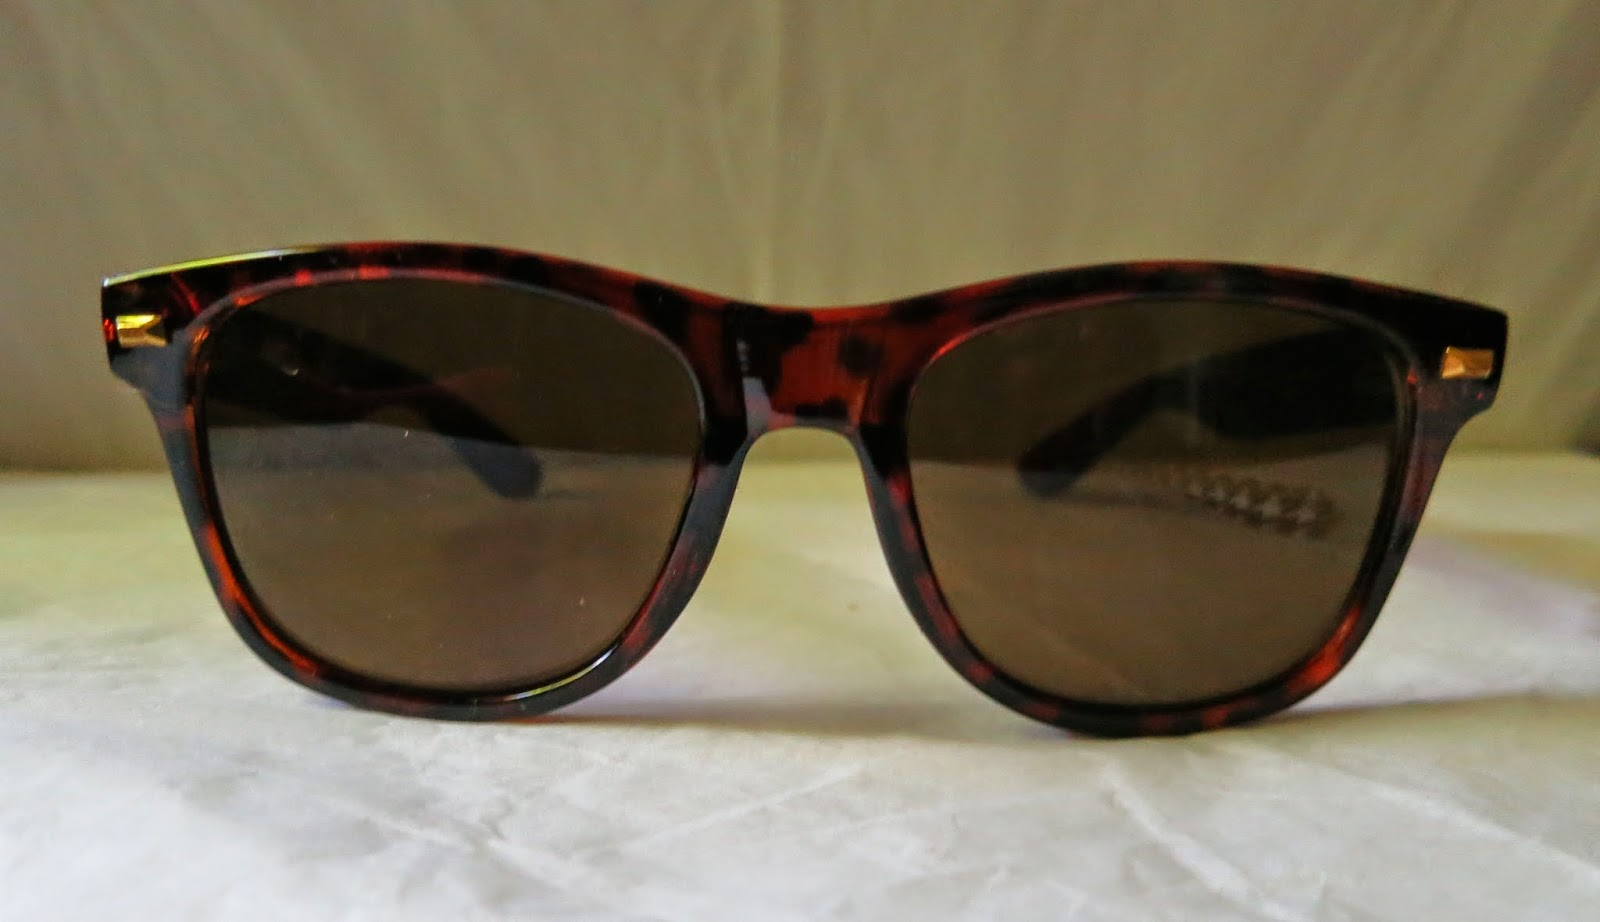 horizon sunglasses, fashion, eyewear, affordable sunglasses